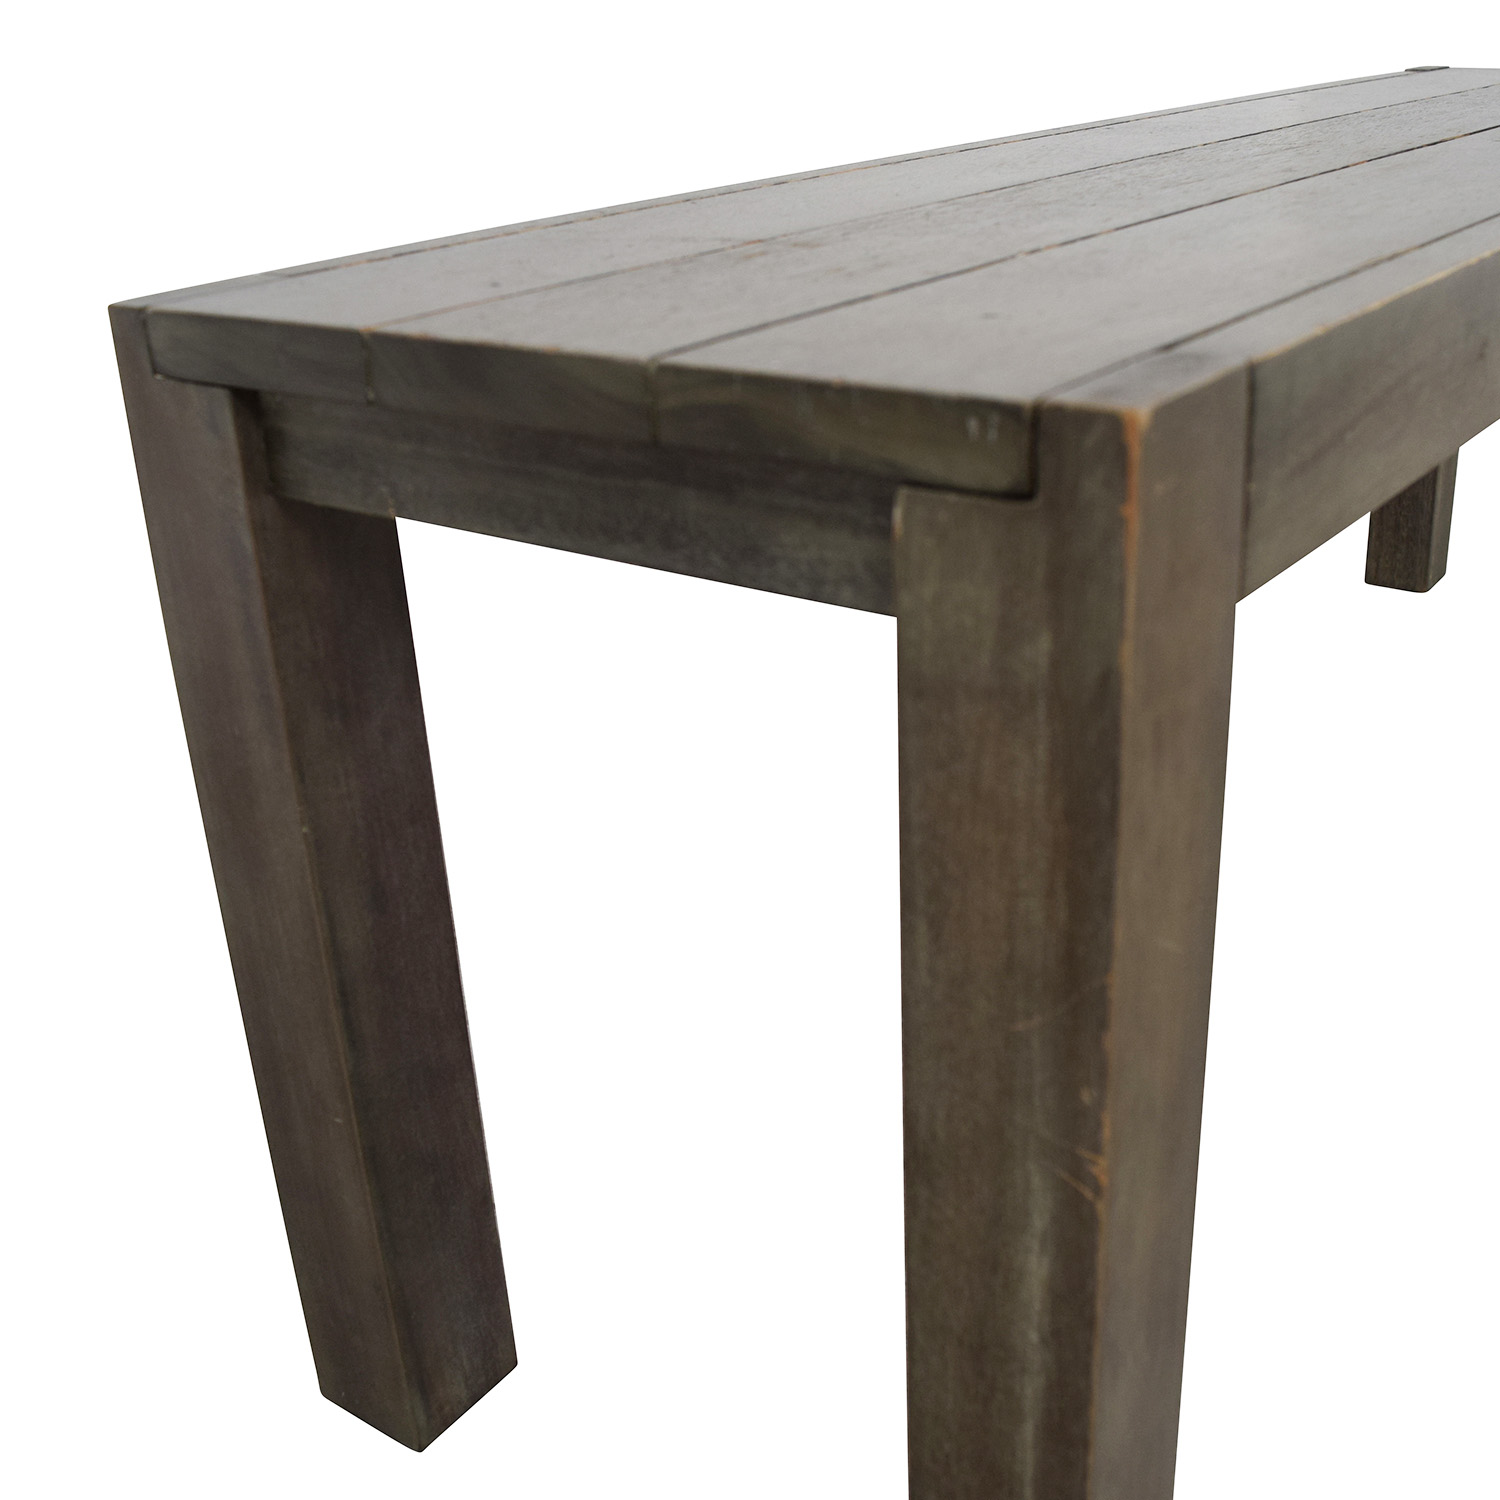 CB2 CB2 Matera Dining Bench for sale